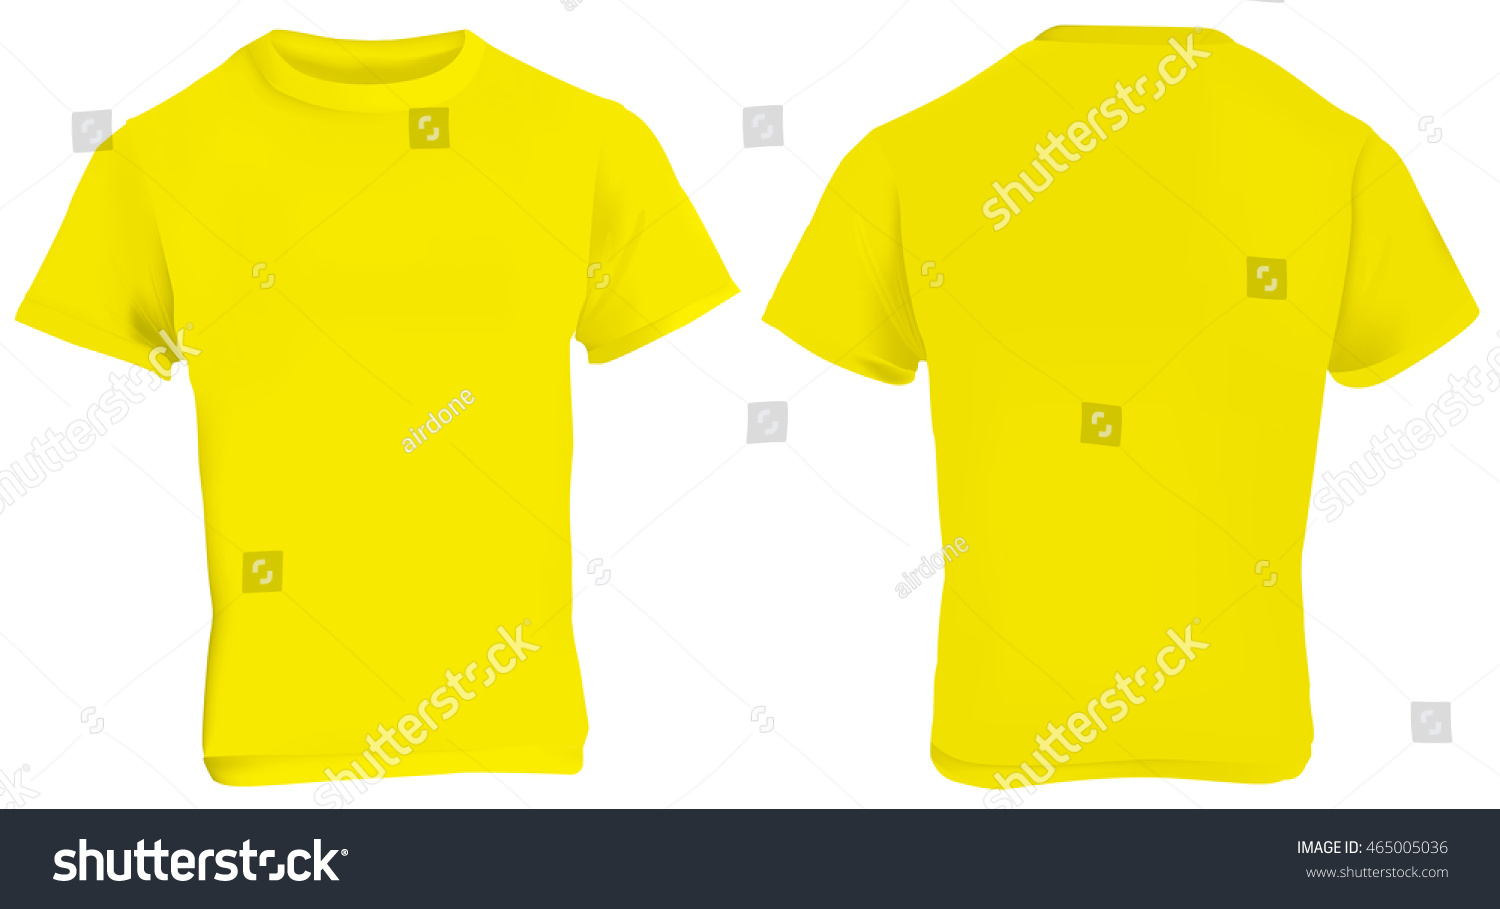 White t shirt front and back template - Vector Illustration Of Blank Yellow Men T Shirt Template Front And Back Design Isolated